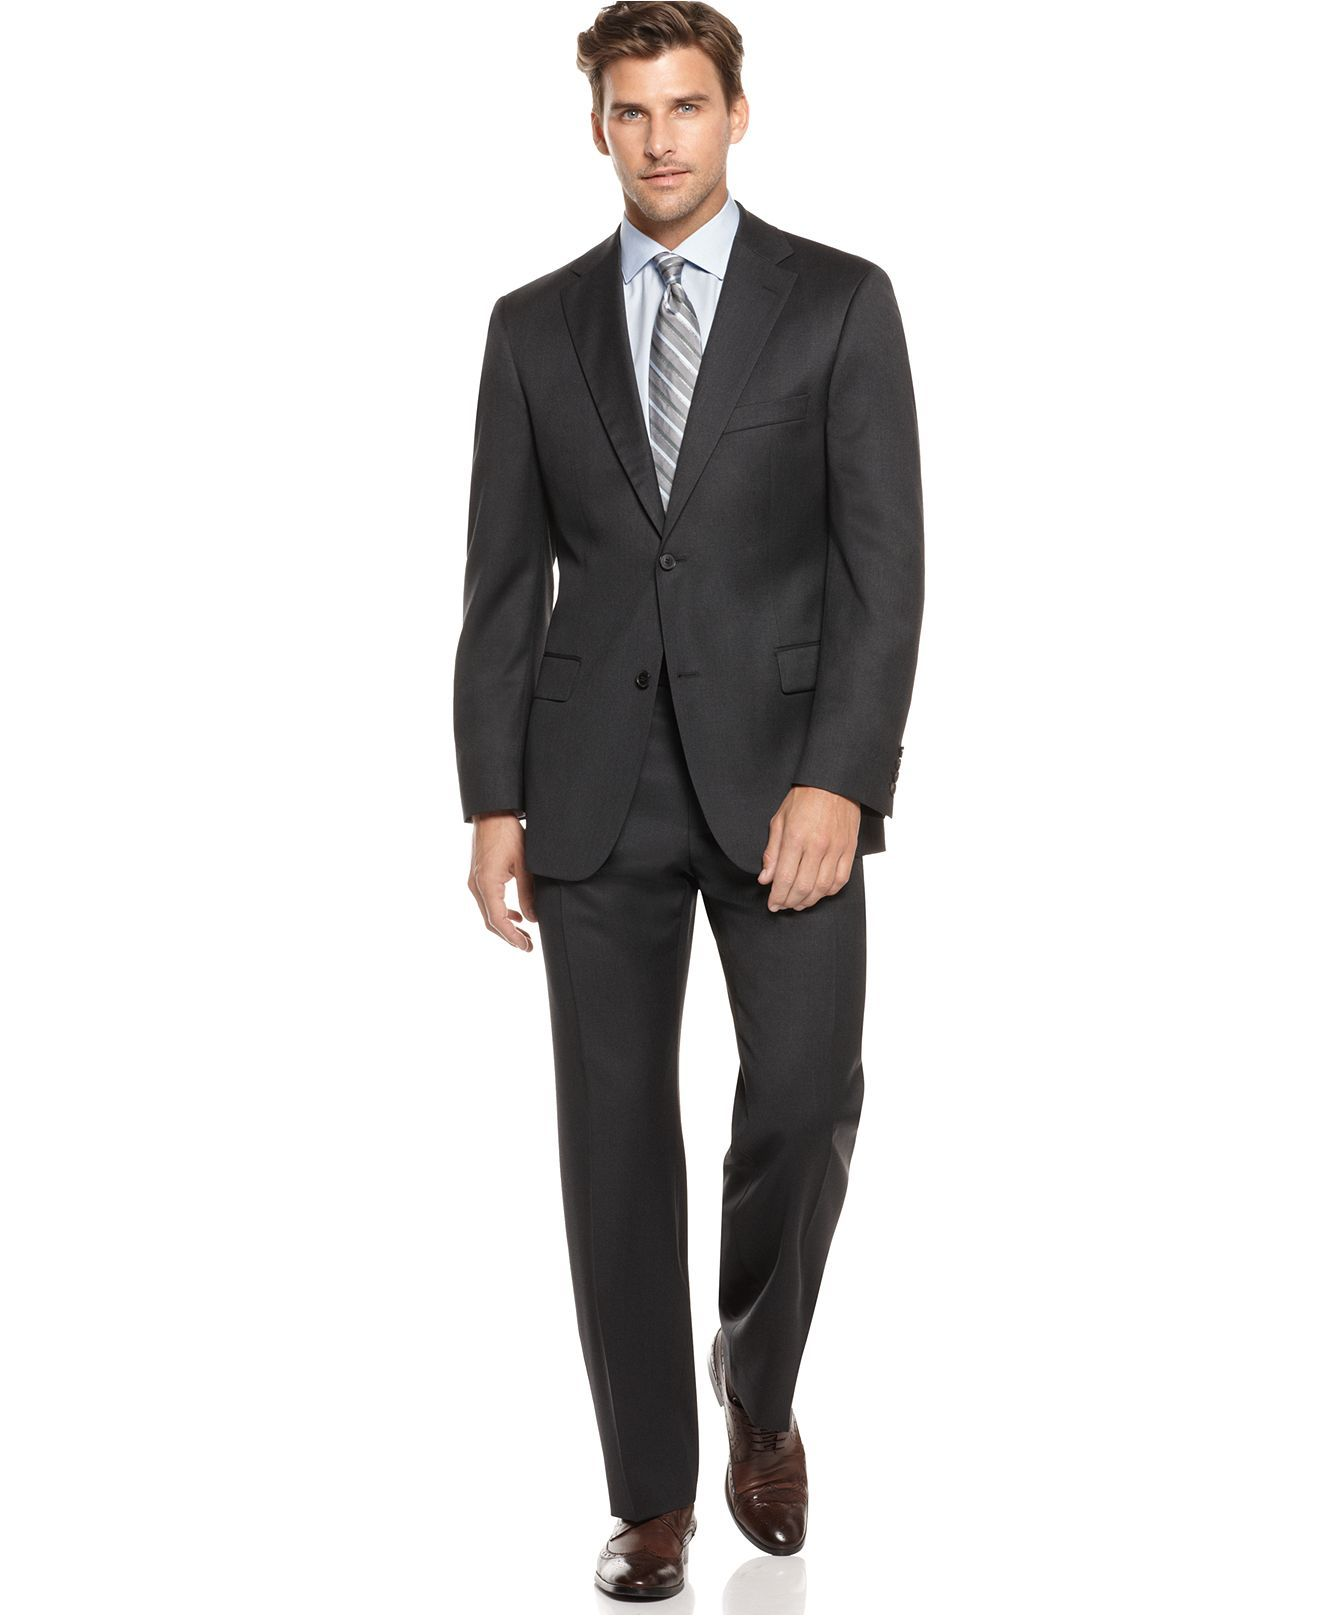 47c65facfee Hugo Boss suit in charcoal grey---Future need for him